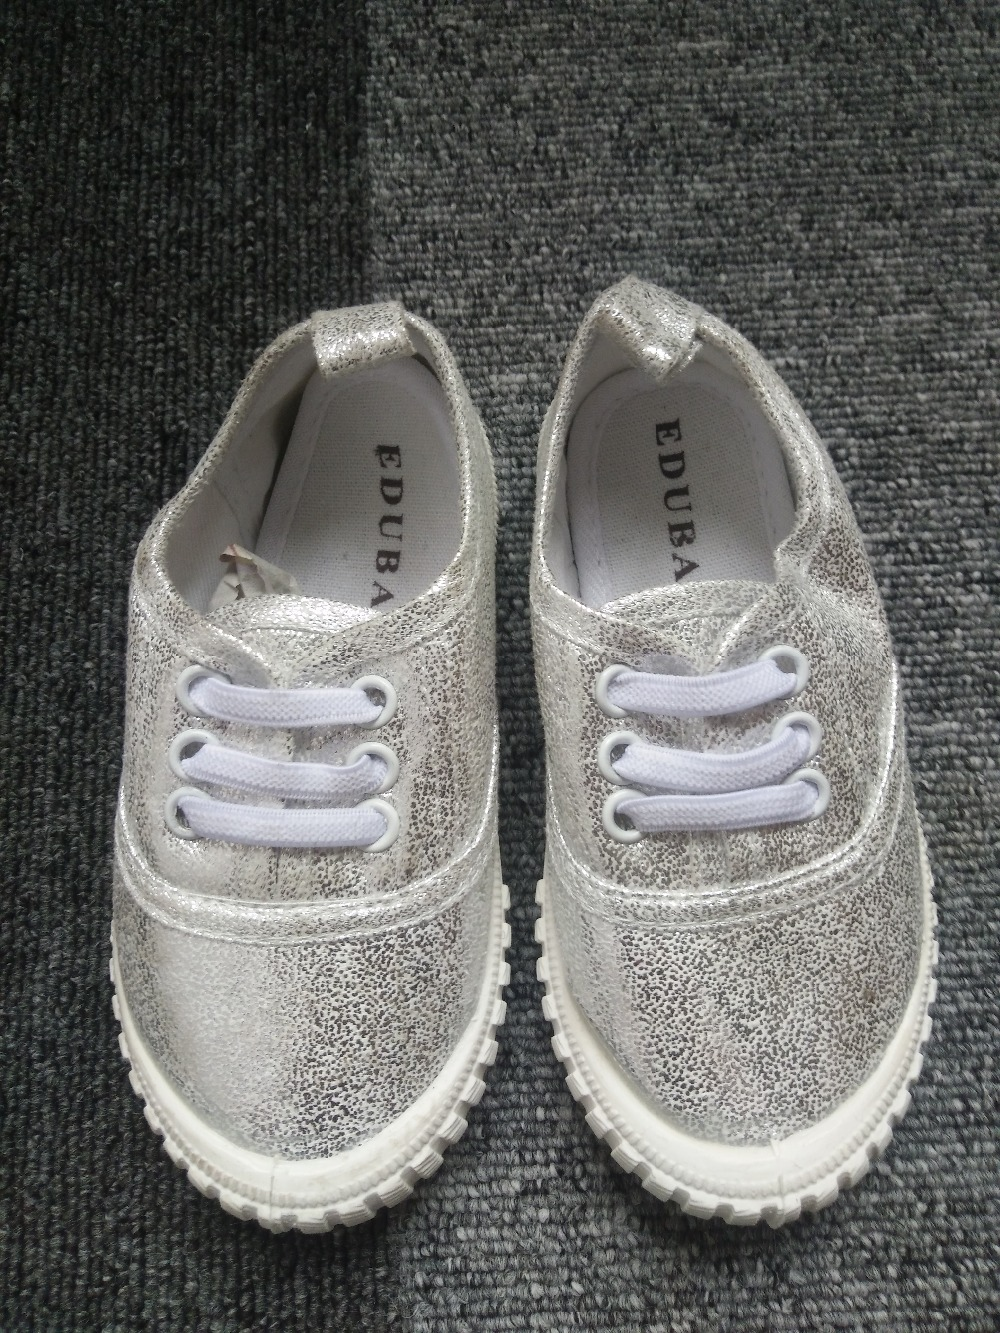 clearance clear stock lowest price kids shoes size 26 30-in Sneakers from Mother & Kids on ...